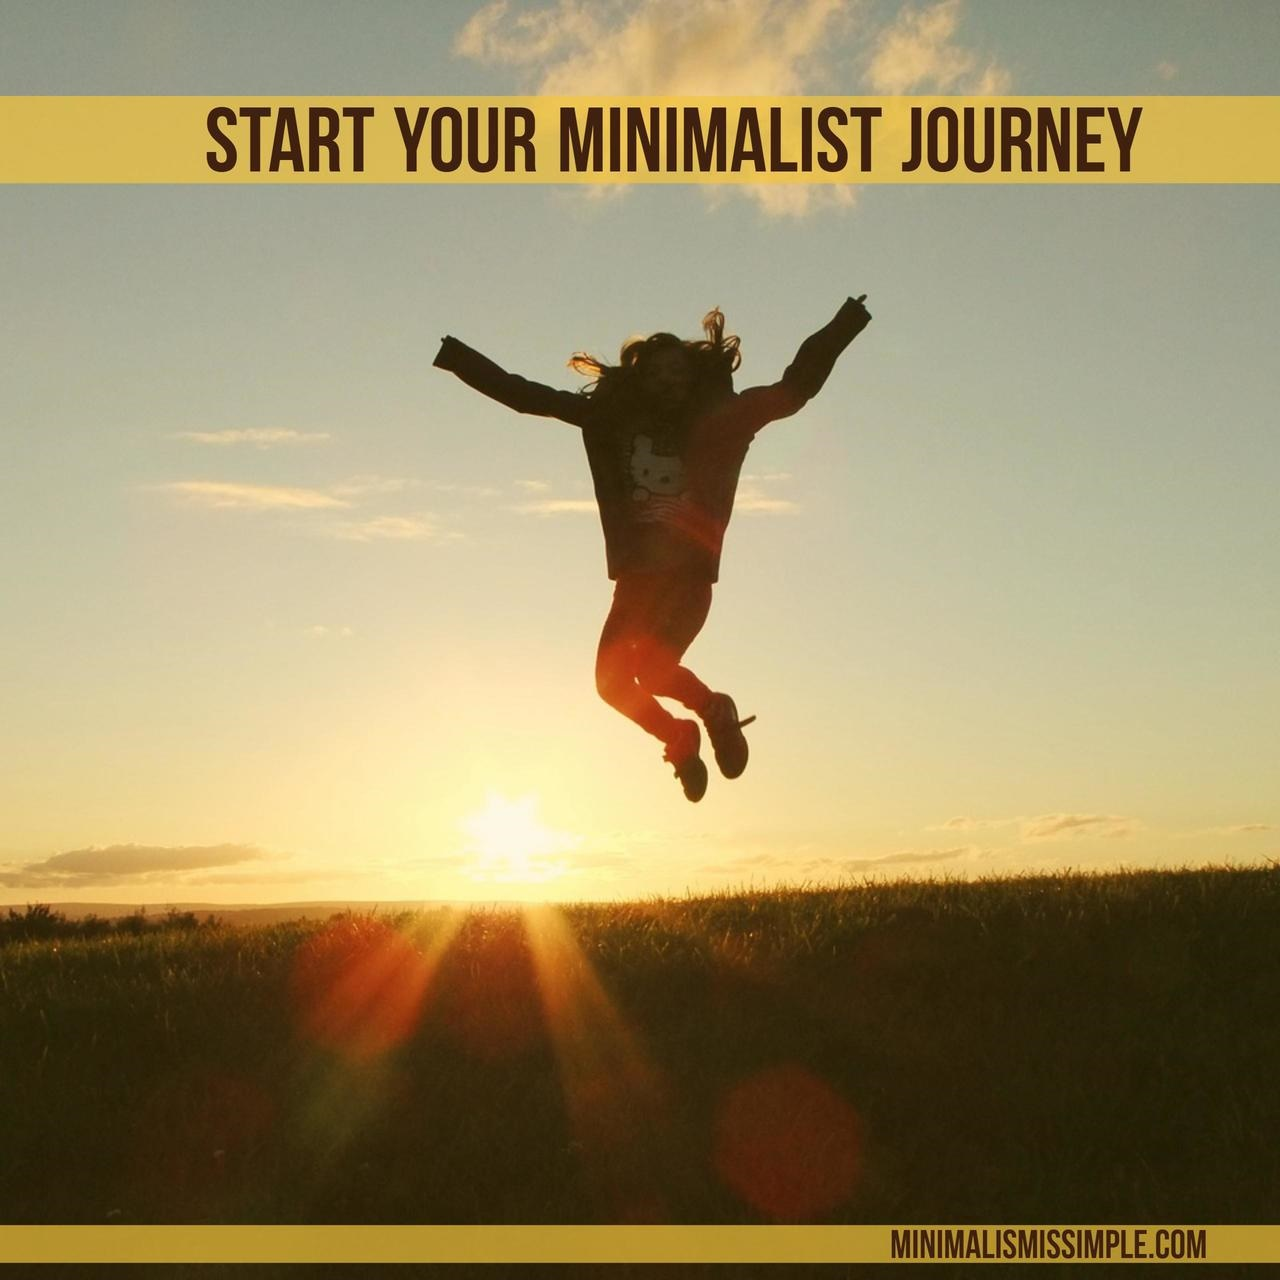 start your minimalist journey minimalismissimple.com